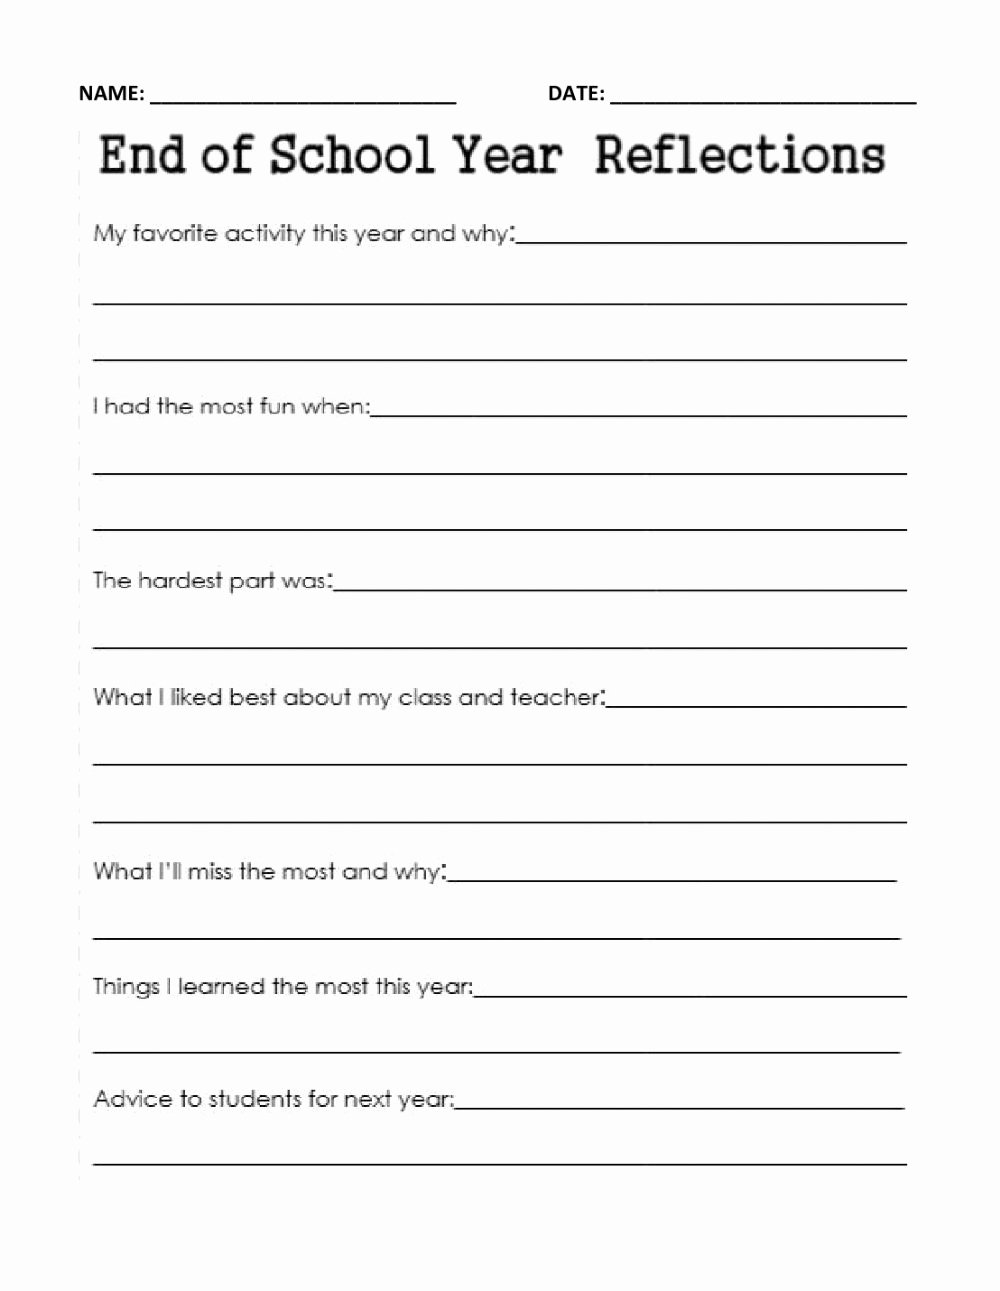 End Of School Year Worksheets New End Of Year School Reflection Interactive Worksheet